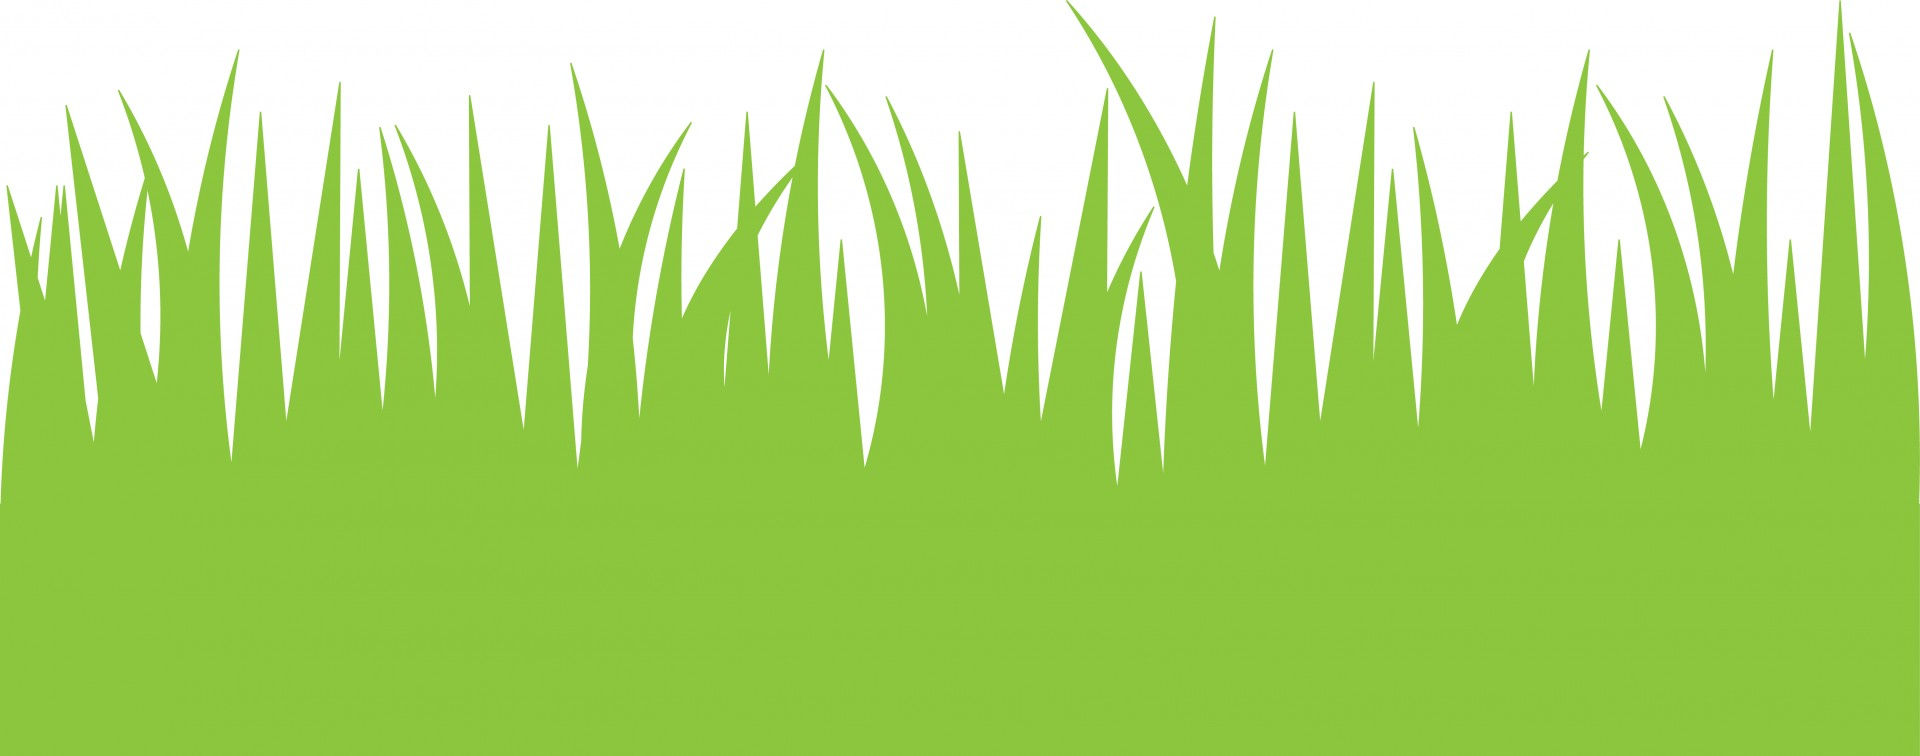 vector transparent download Lawn clipart. Free cliparts download clip.